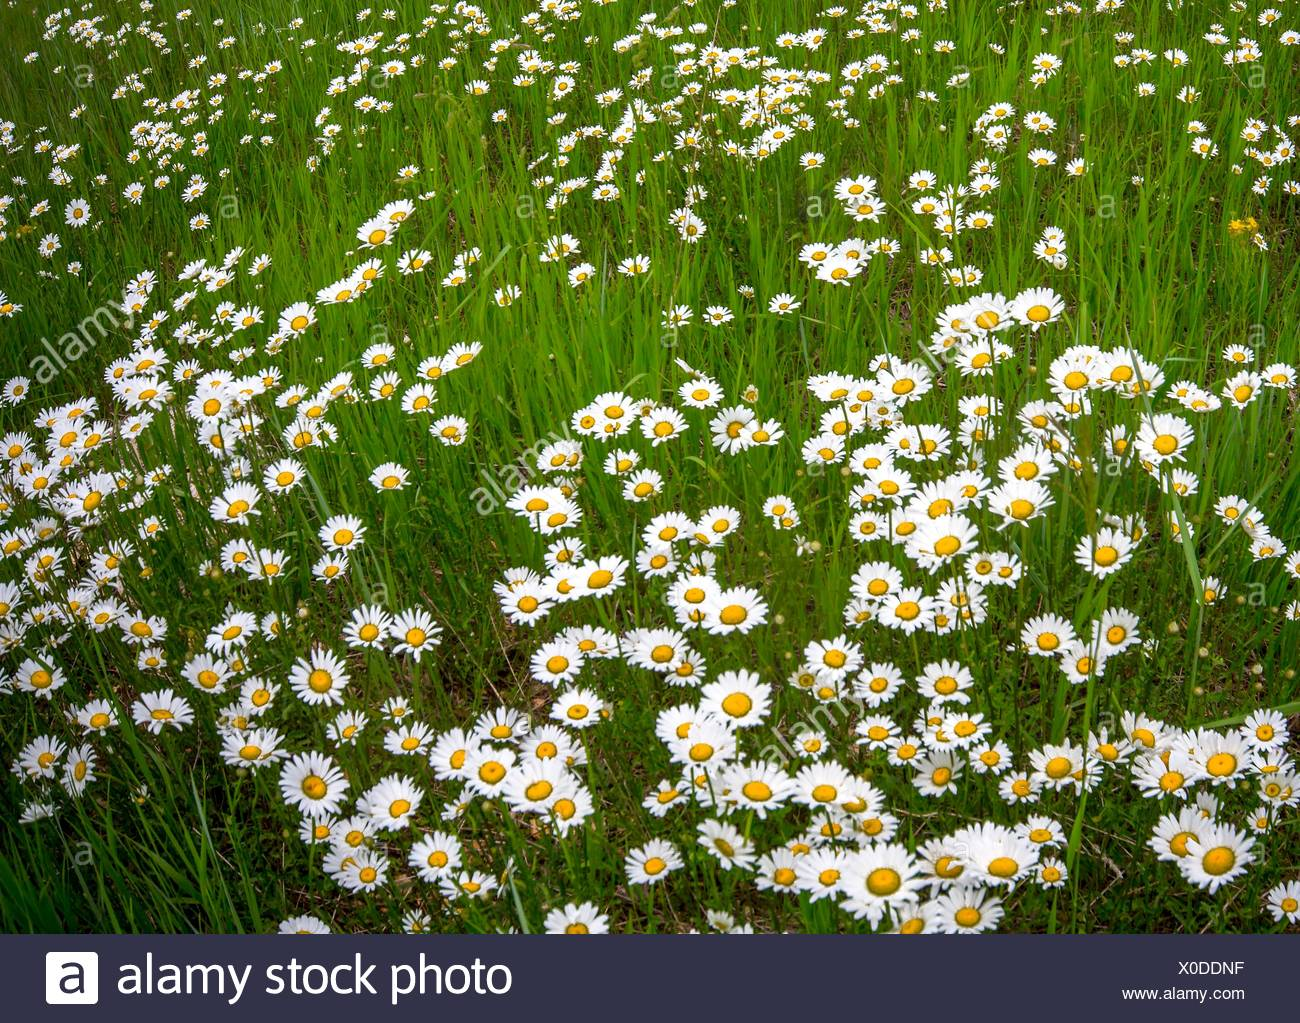 Wildflowers thrive in the summer at Kaibab National Forest, Arizona. - Stock Image